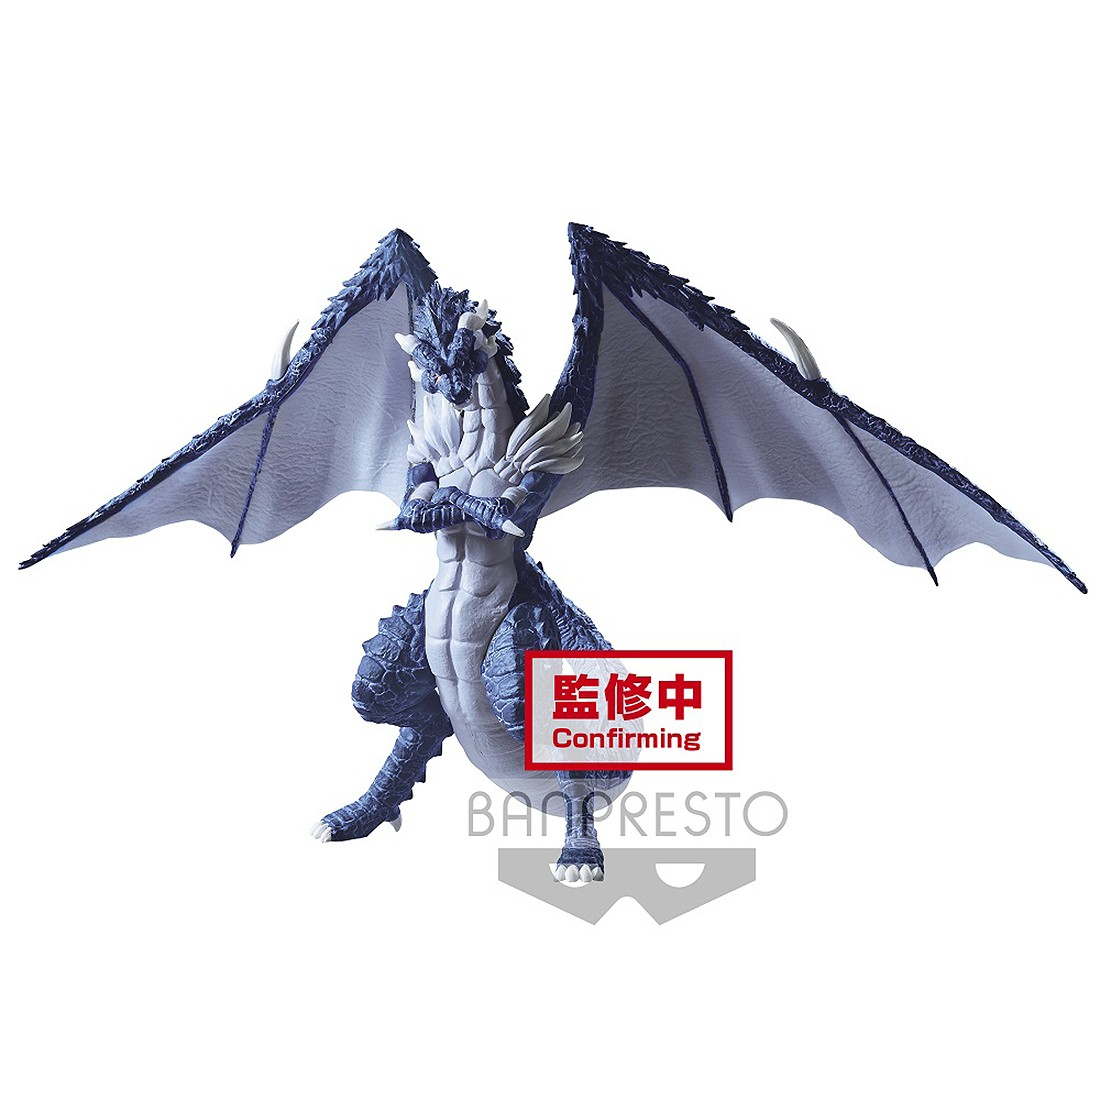 PREORDER - Banpresto That Time I Got Reincarnated As A Slime Veldora Tempest Repaint Figure (blue)